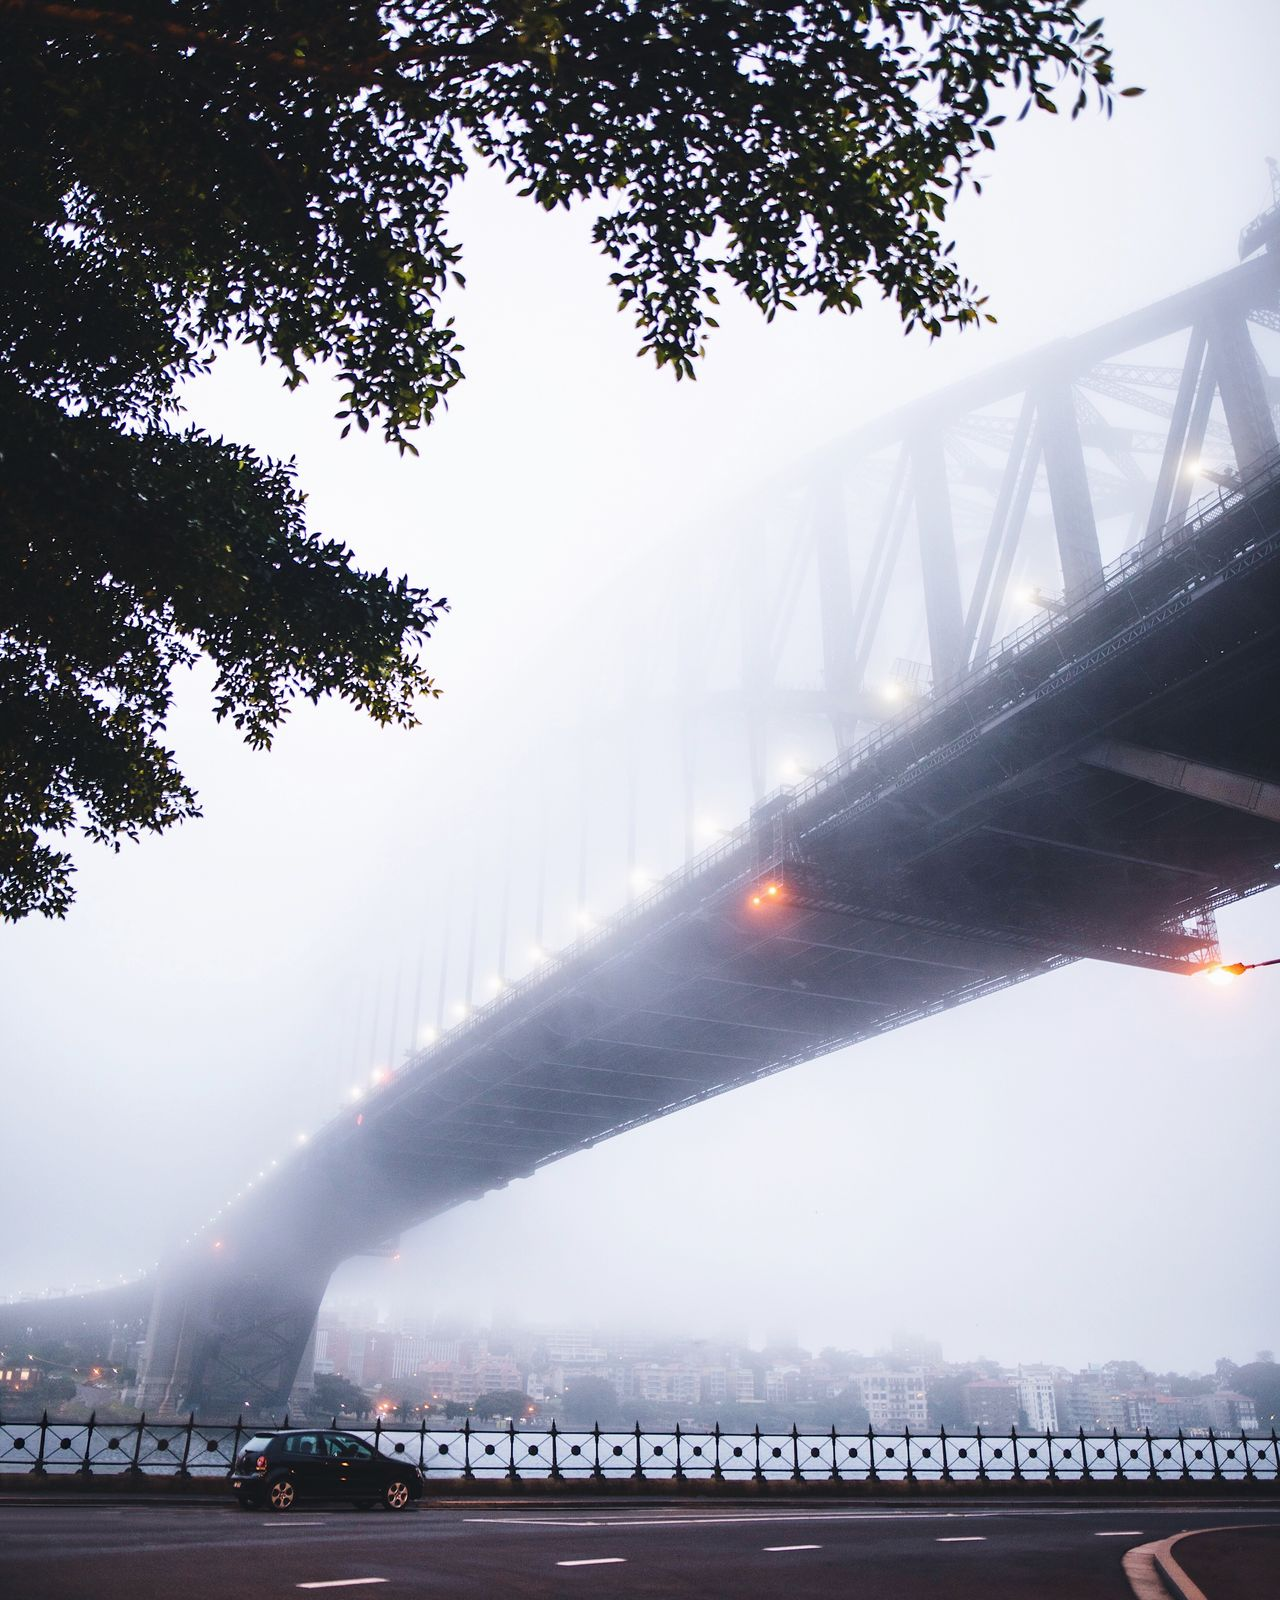 The Architect - 2017 EyeEm Awards @itchban / www.itchban.com Tree Bridge - Man Made Structure Sky Architecture Outdoors Built Structure Day Fog Low Angle View Nature Travel Destinations Mountain No People